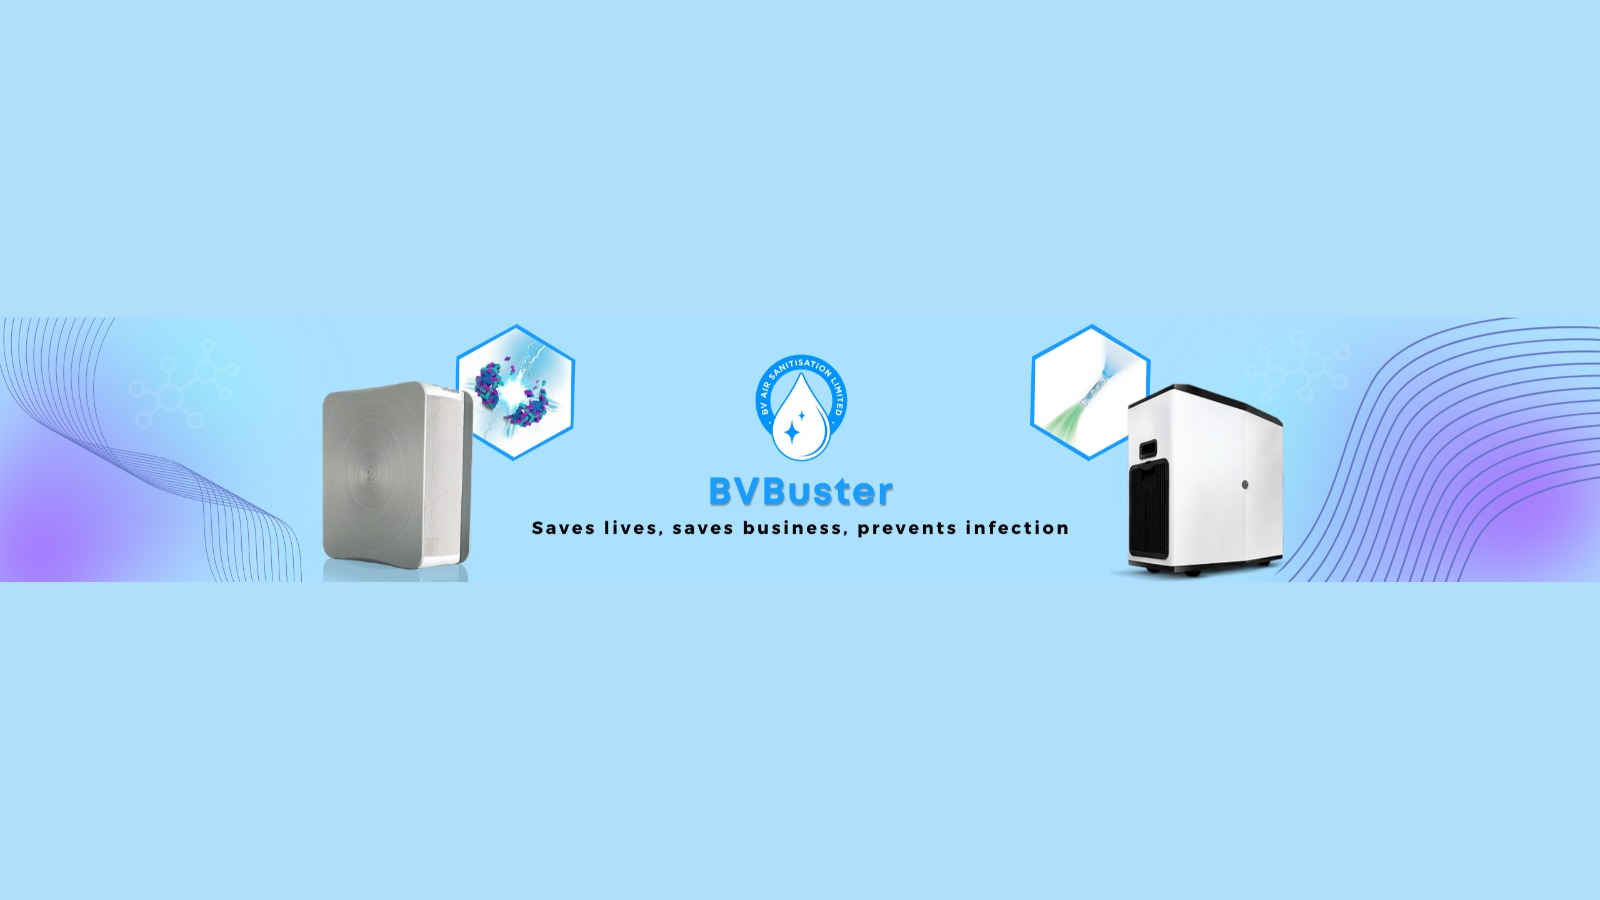 BV Buster Introducing Game-Changing Air Disinfection and Sanitization Systems to Save Lives, Save Businesses and Prevent Infection. 1